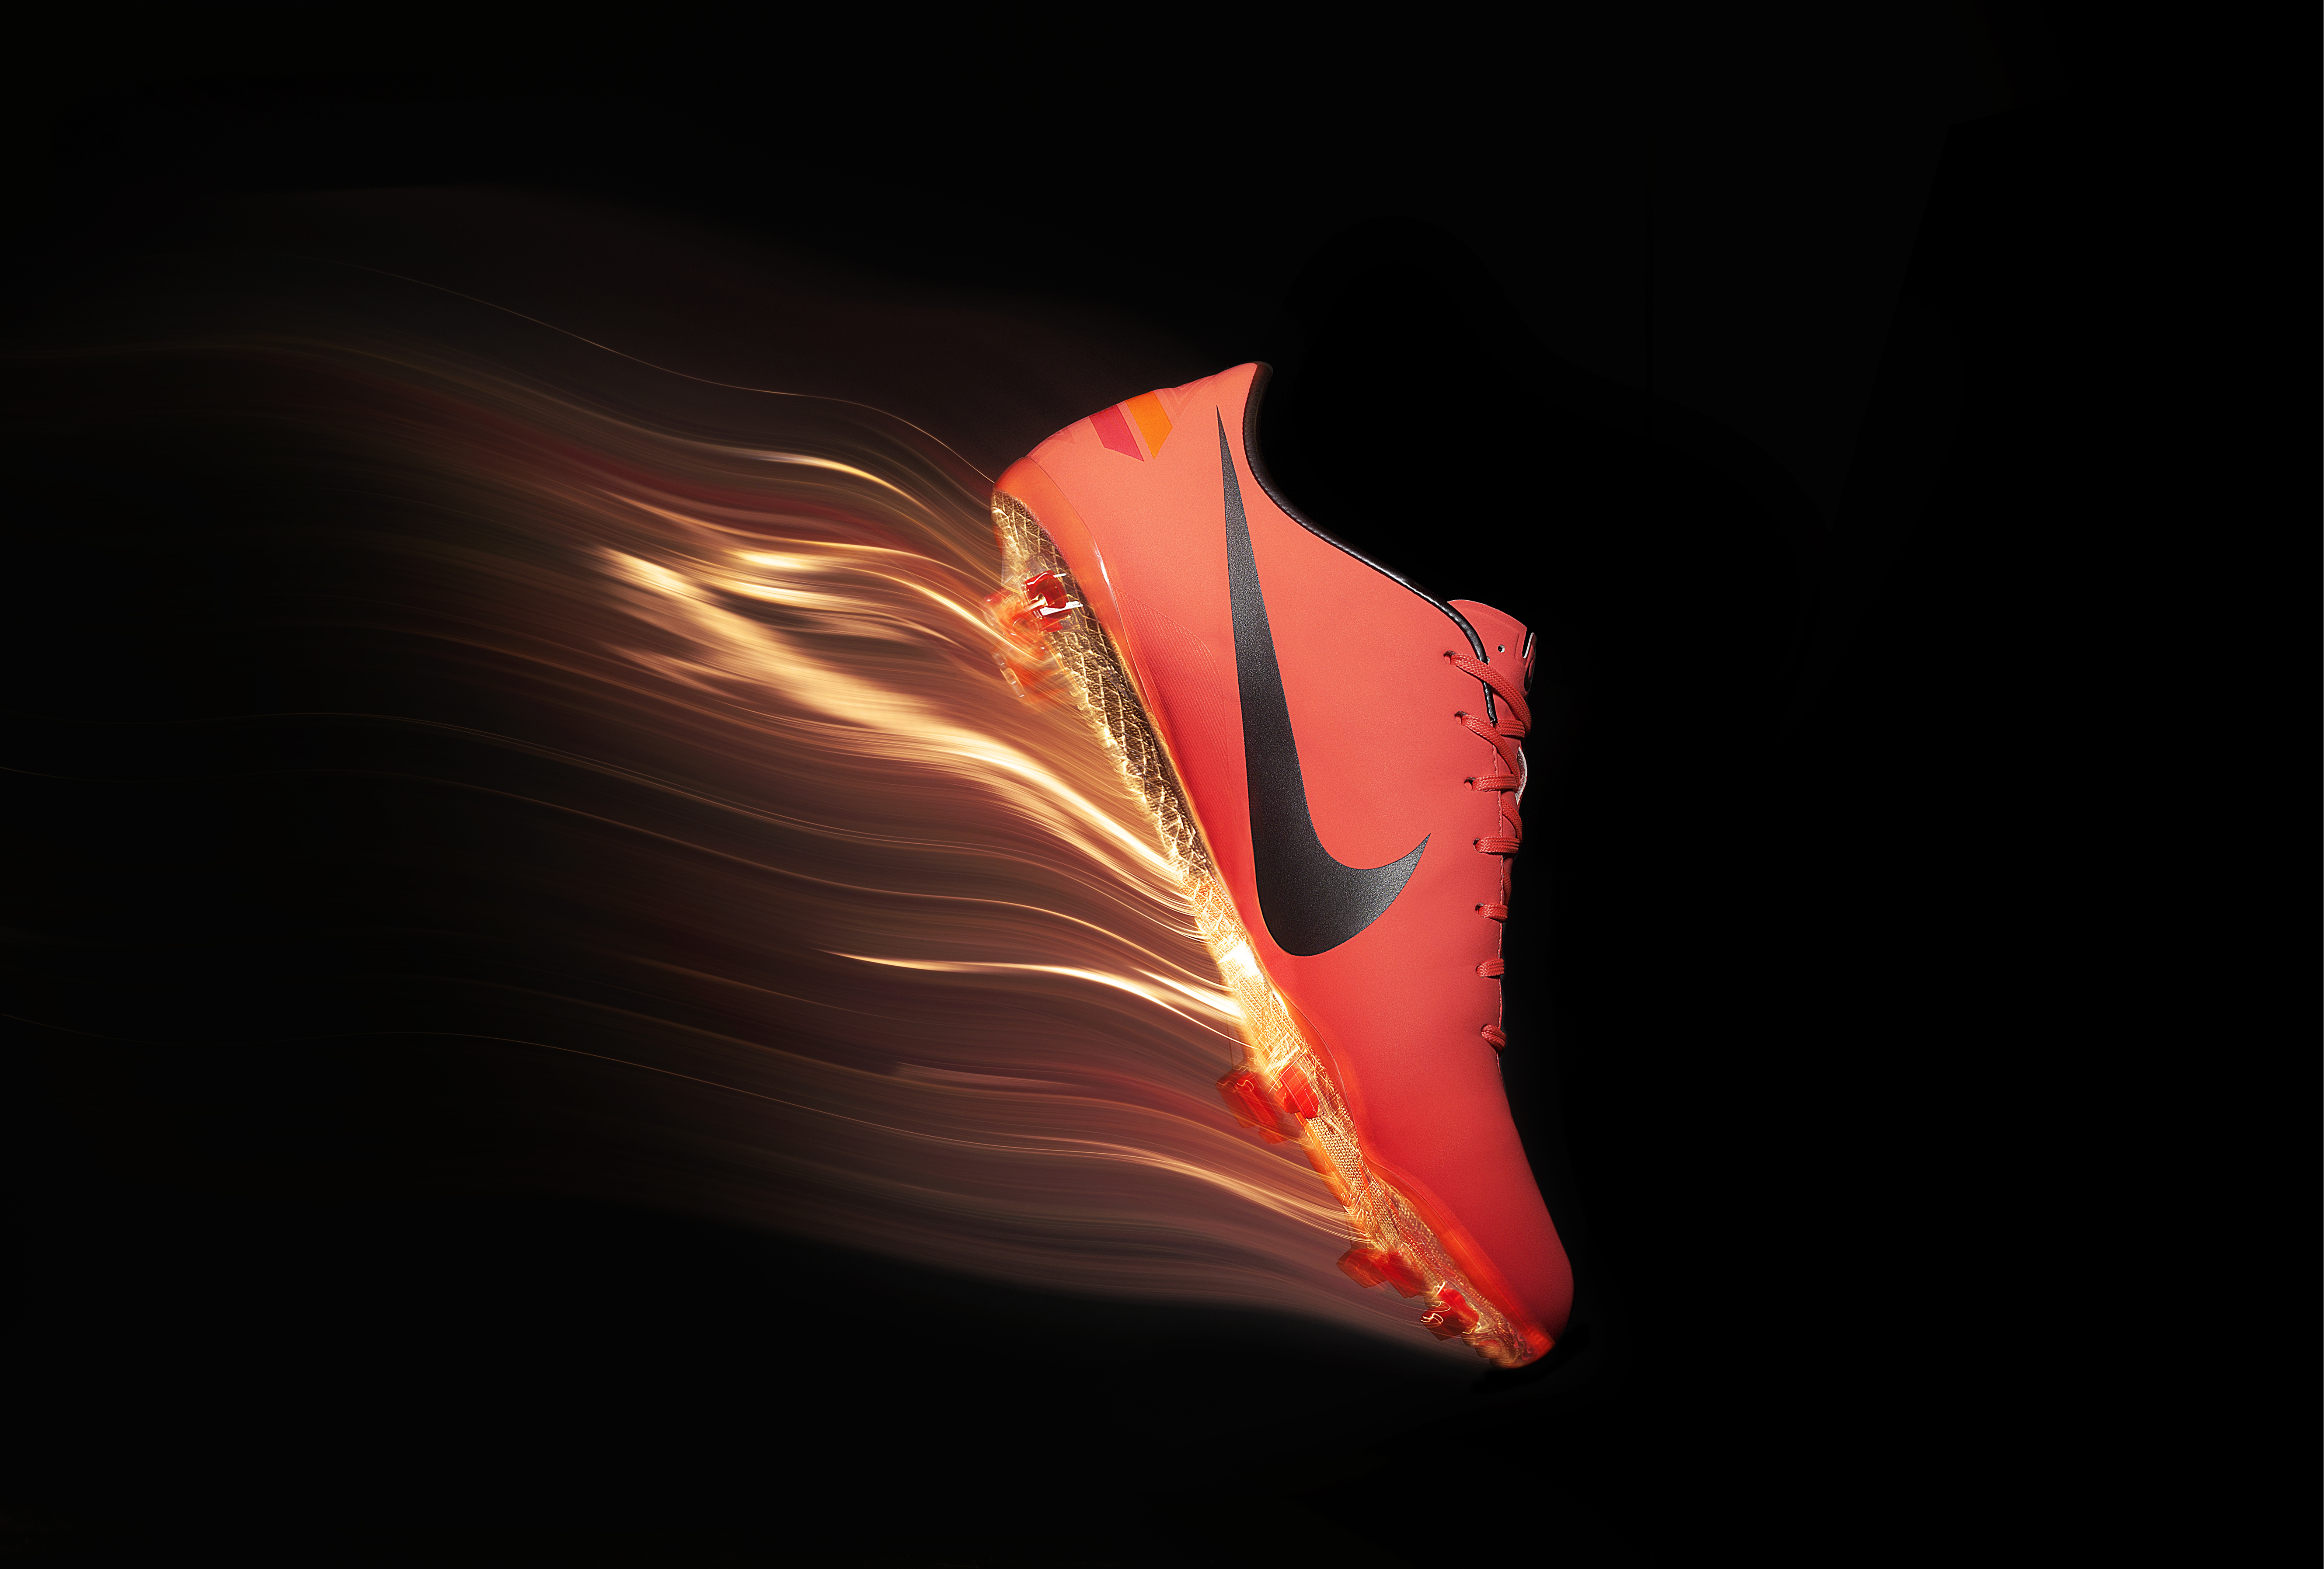 65 Nike Hd Wallpapers Background Images Wallpaper Abyss